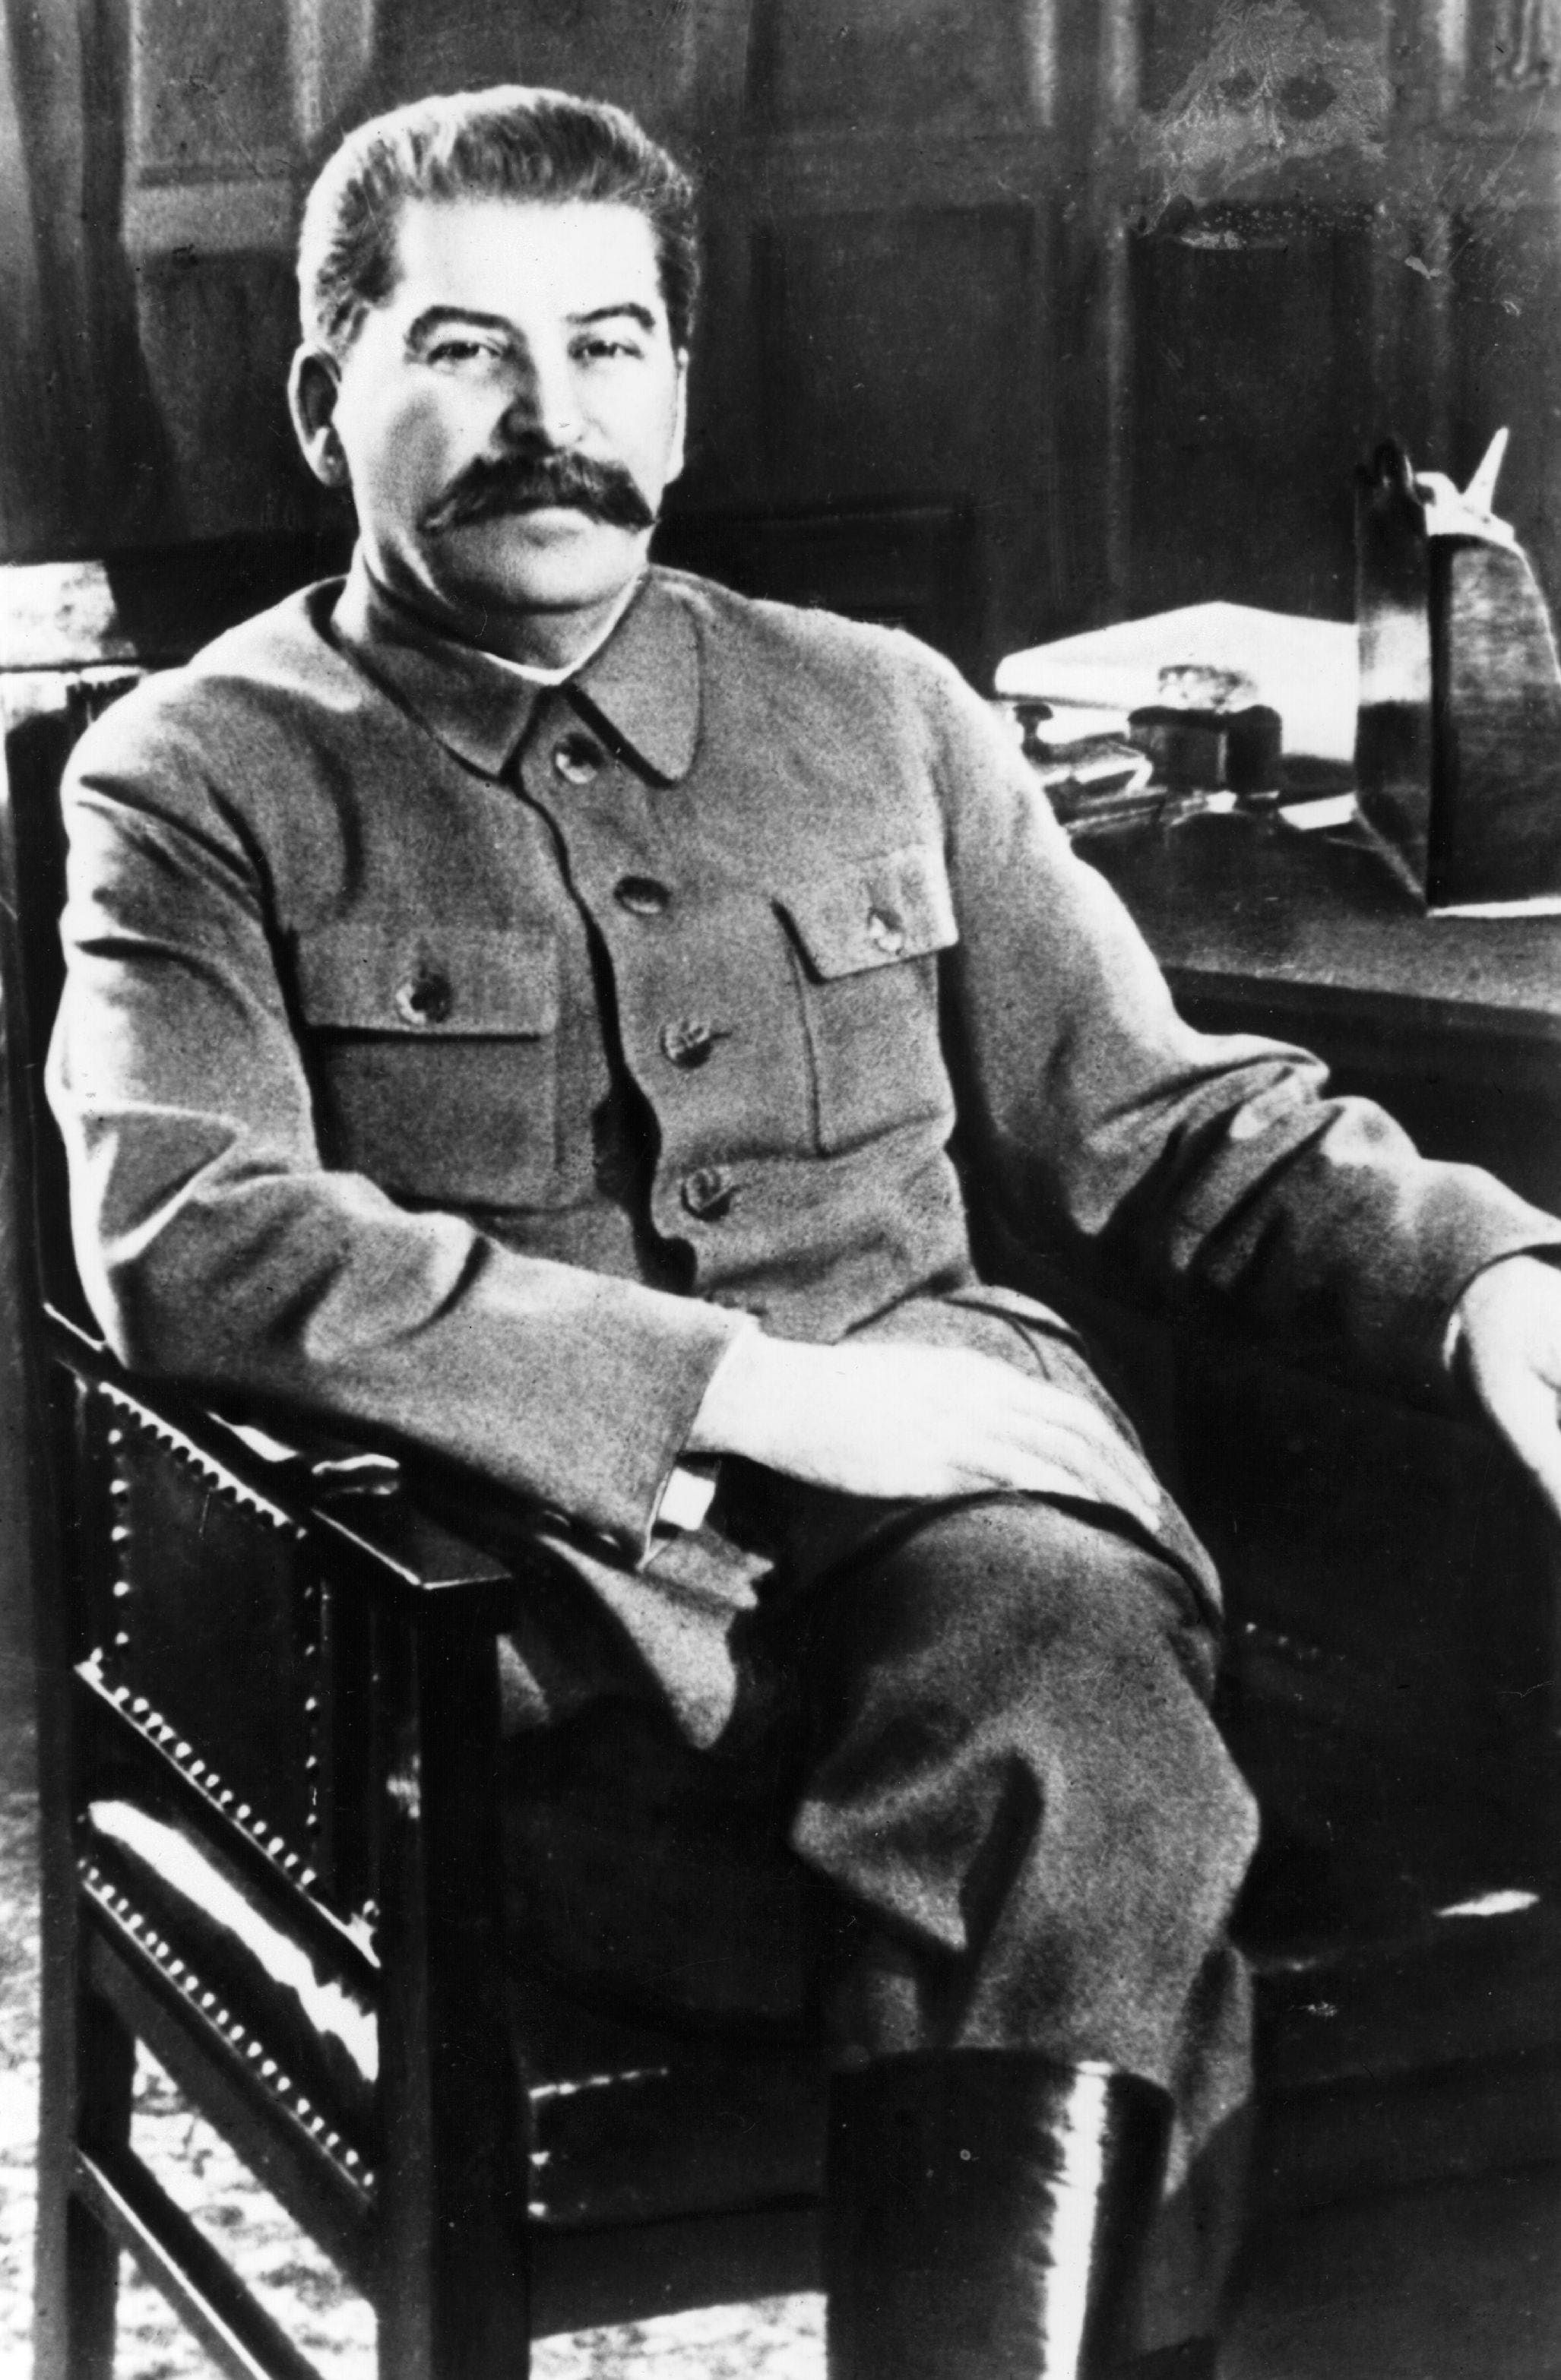 a biography of joseph stalin the leader of the soviet union Joseph stalin was the second leader of the soviet union and general secretary of the communist party in russia after lenin's death in 1924, stalin assumed the.